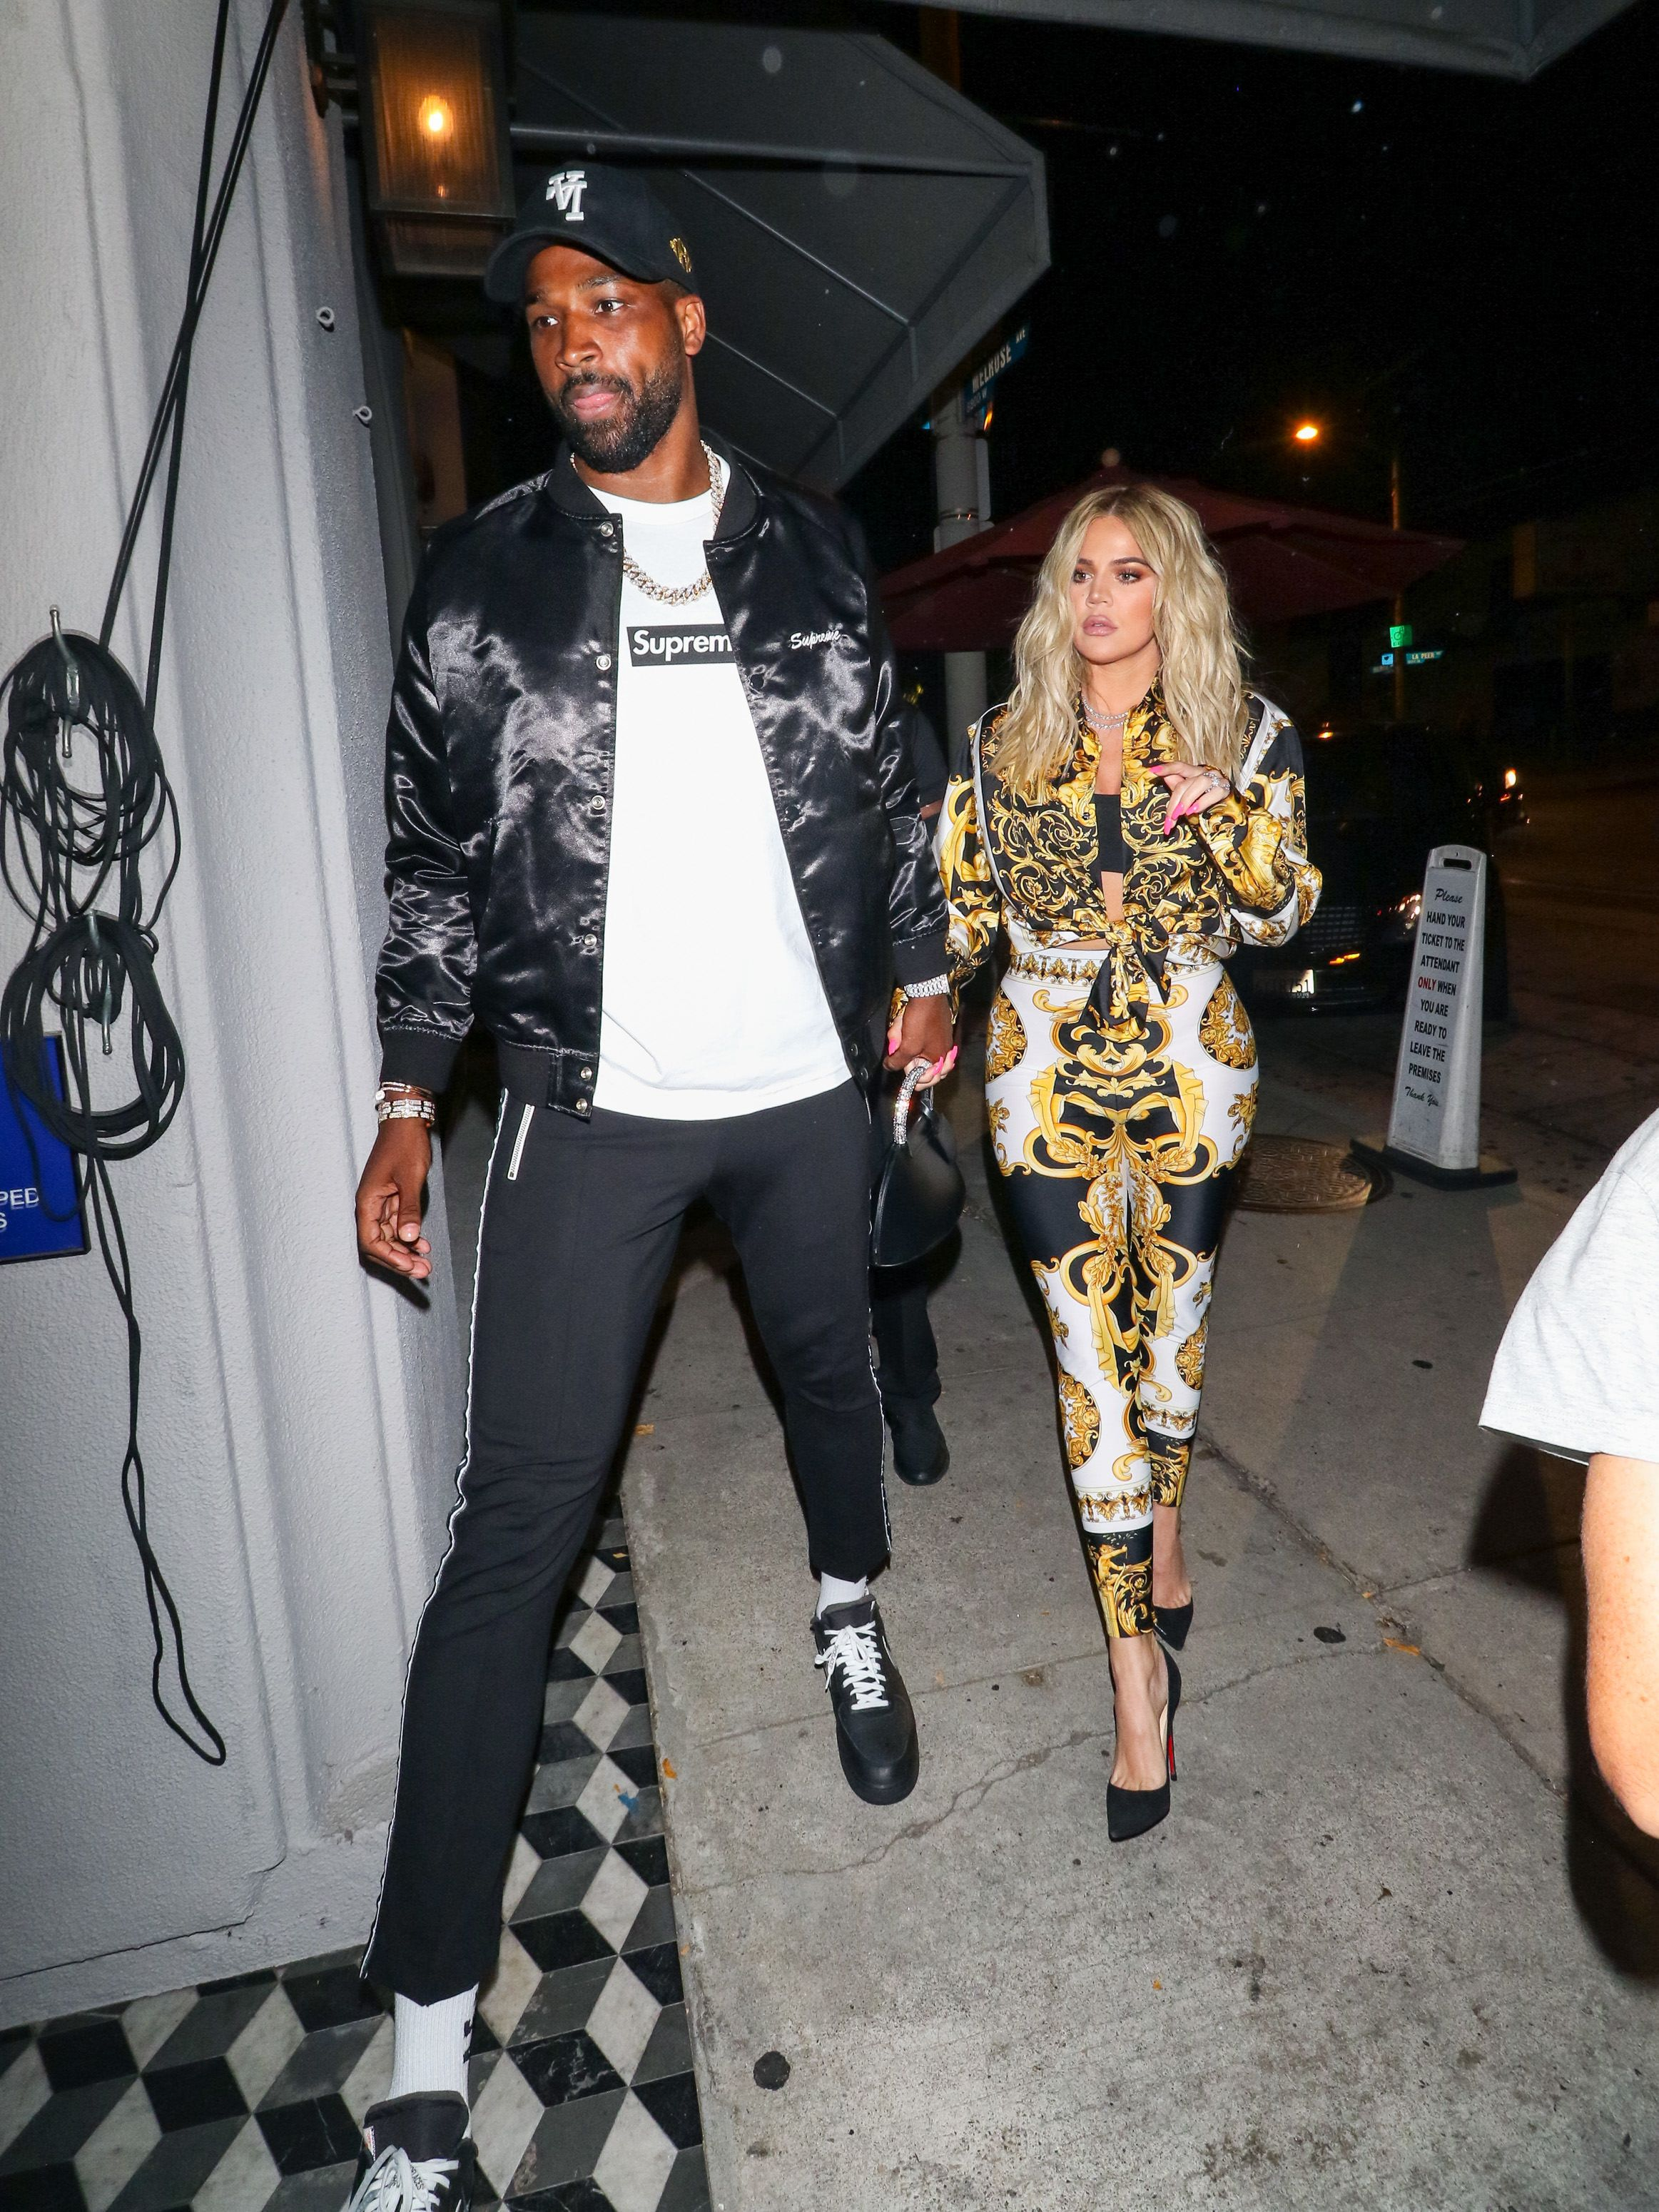 LOS ANGELES, CA - AUGUST 17: Khloe Kardashian and Tristan Thompson are seen on August 17, 2018 in Los Angeles, California.  (Photo by gotpap/Bauer-Griffin/GC Images)